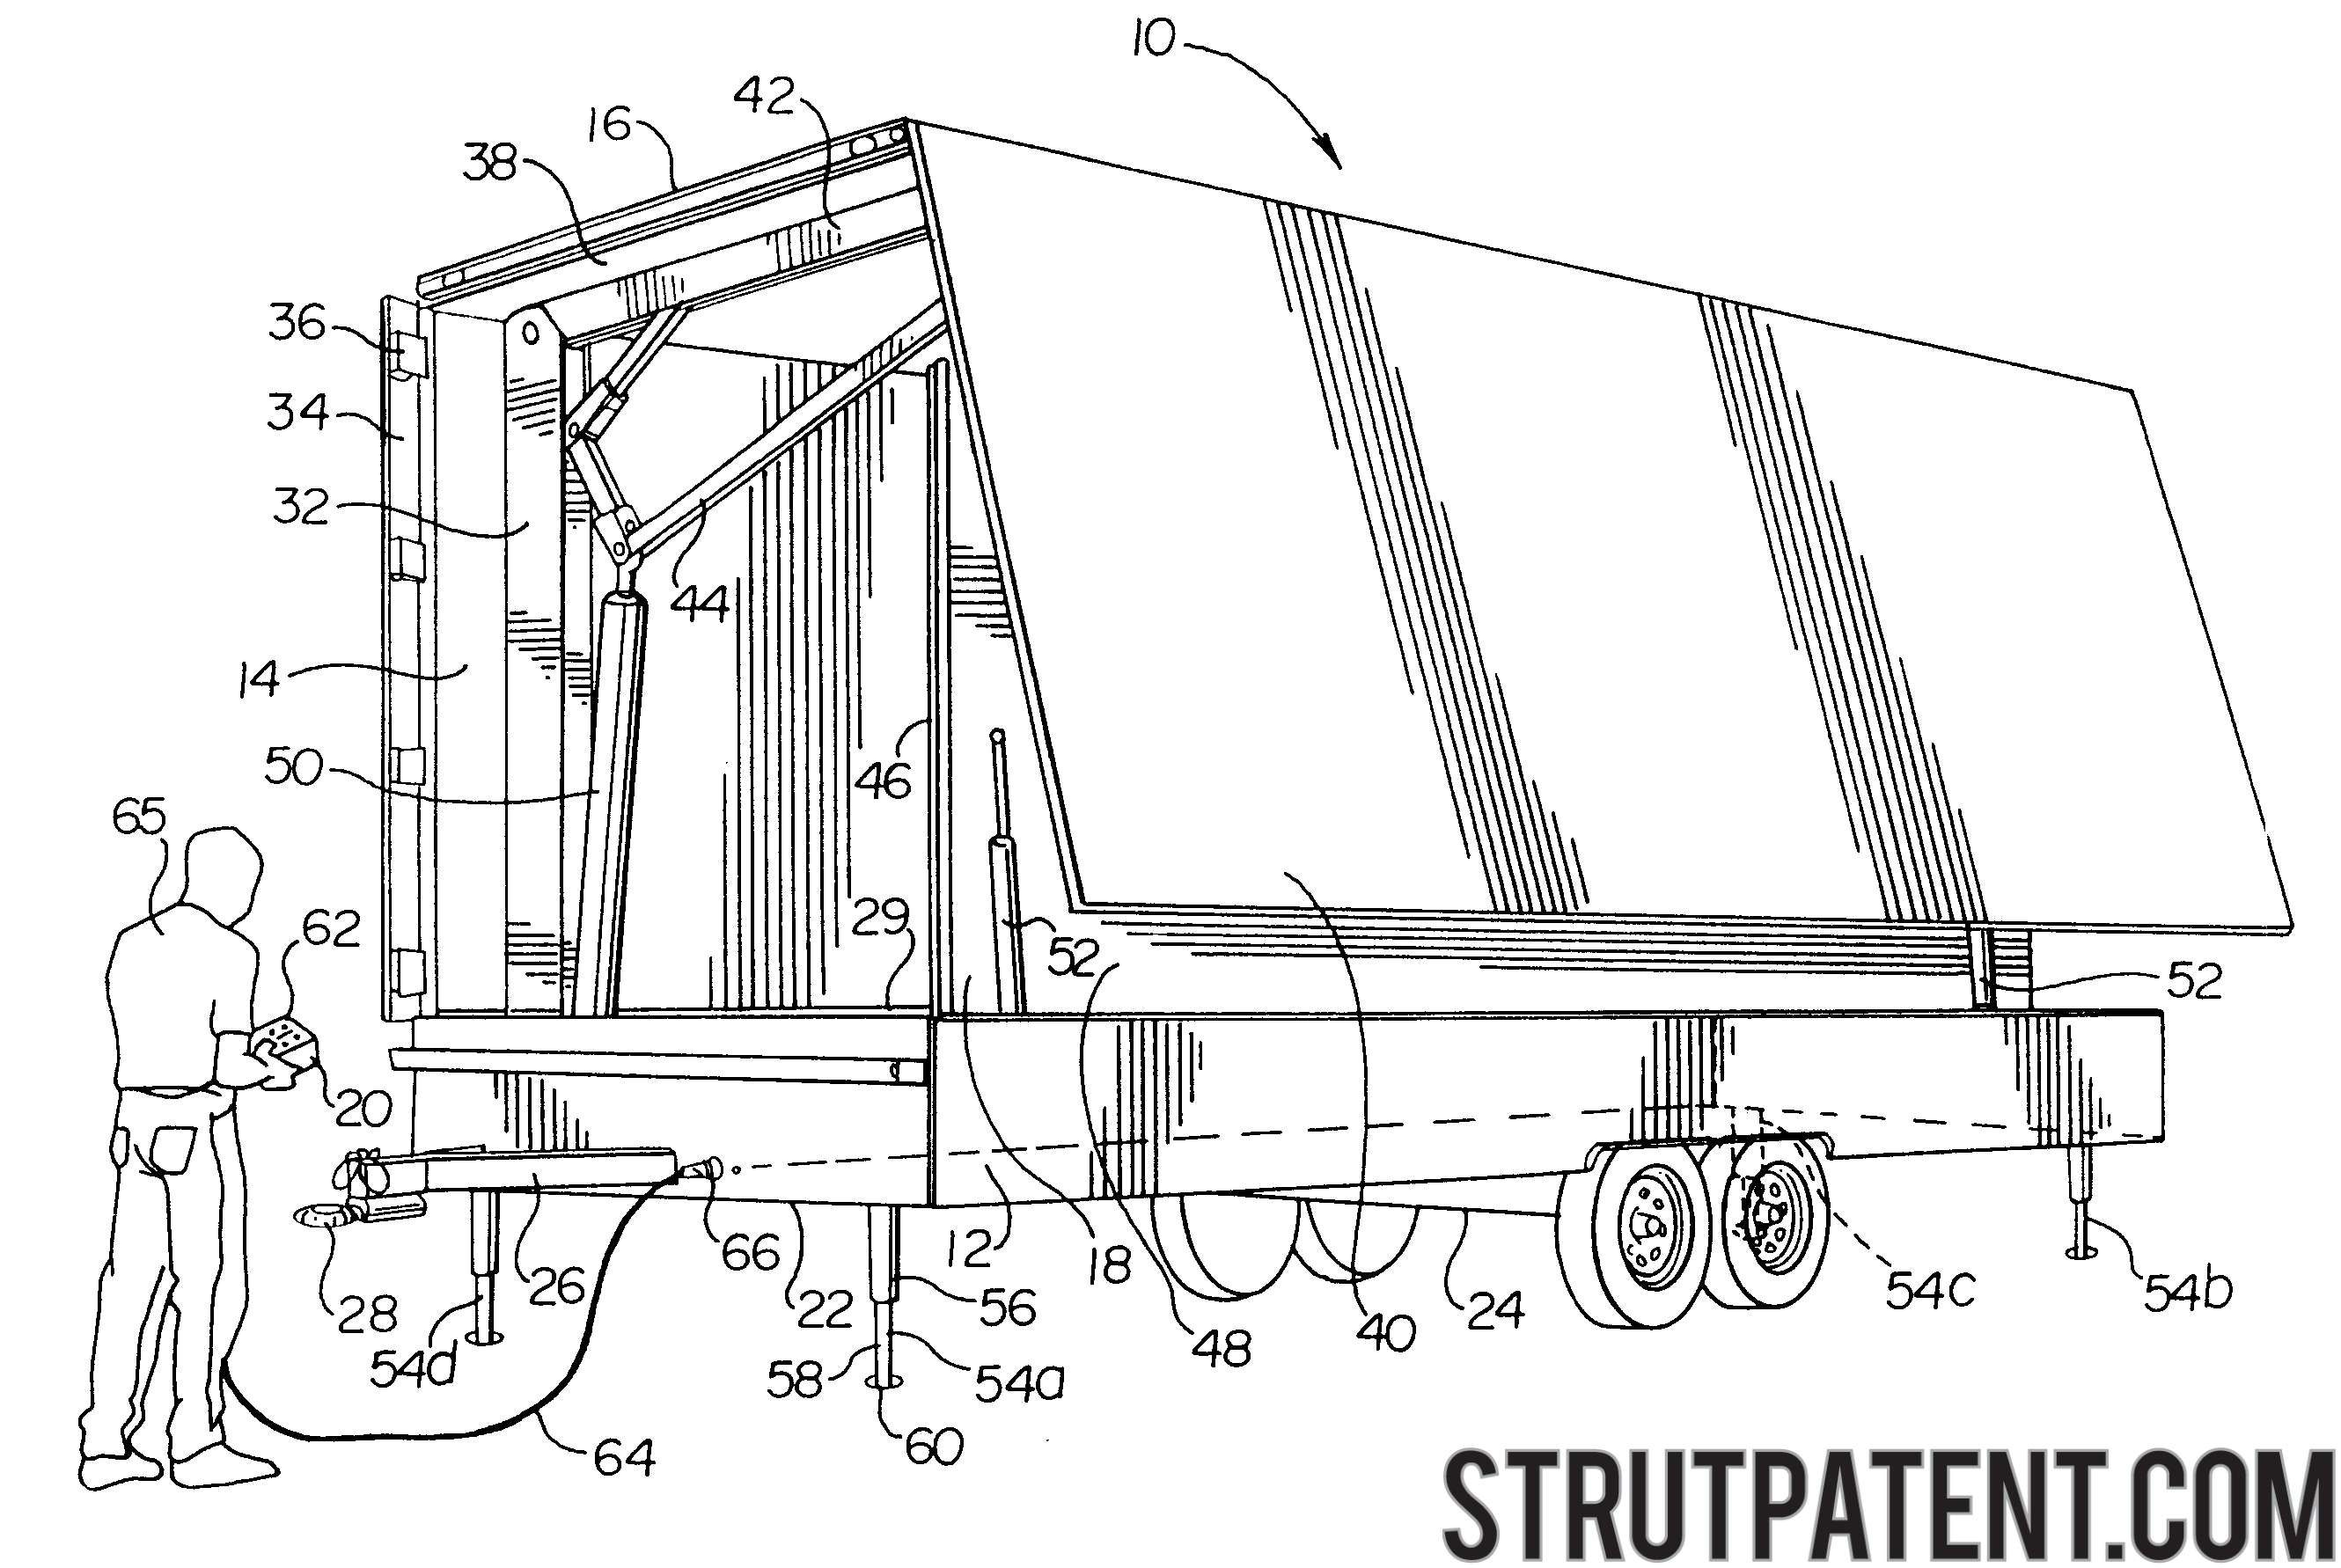 Patent: Hydraulic leveling system for mobile stage vehicle